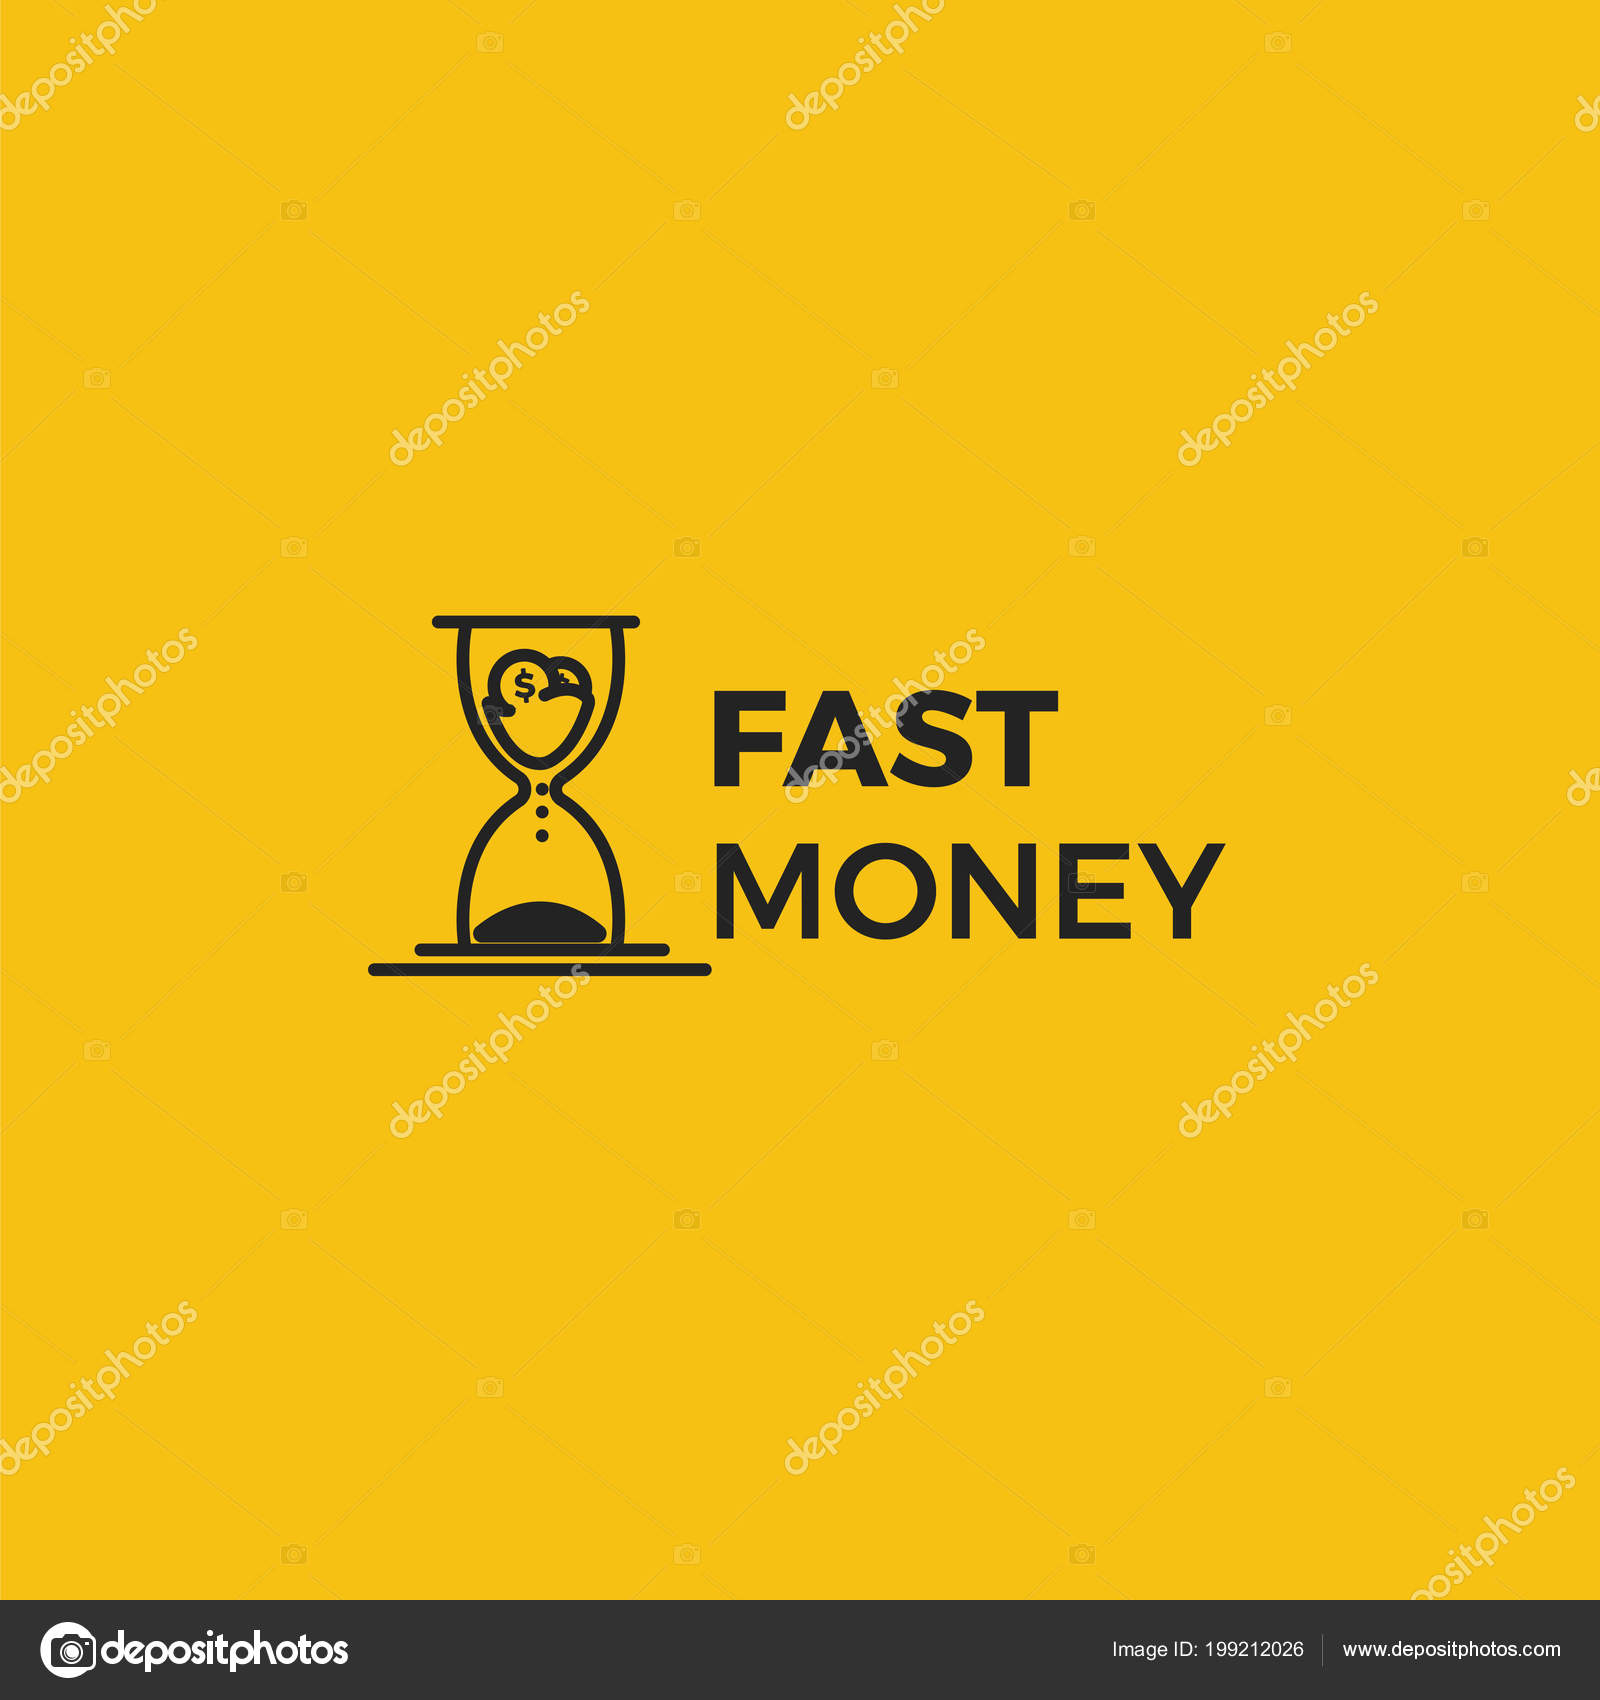 Fast money logo | Fast money logo  Time is money icons with